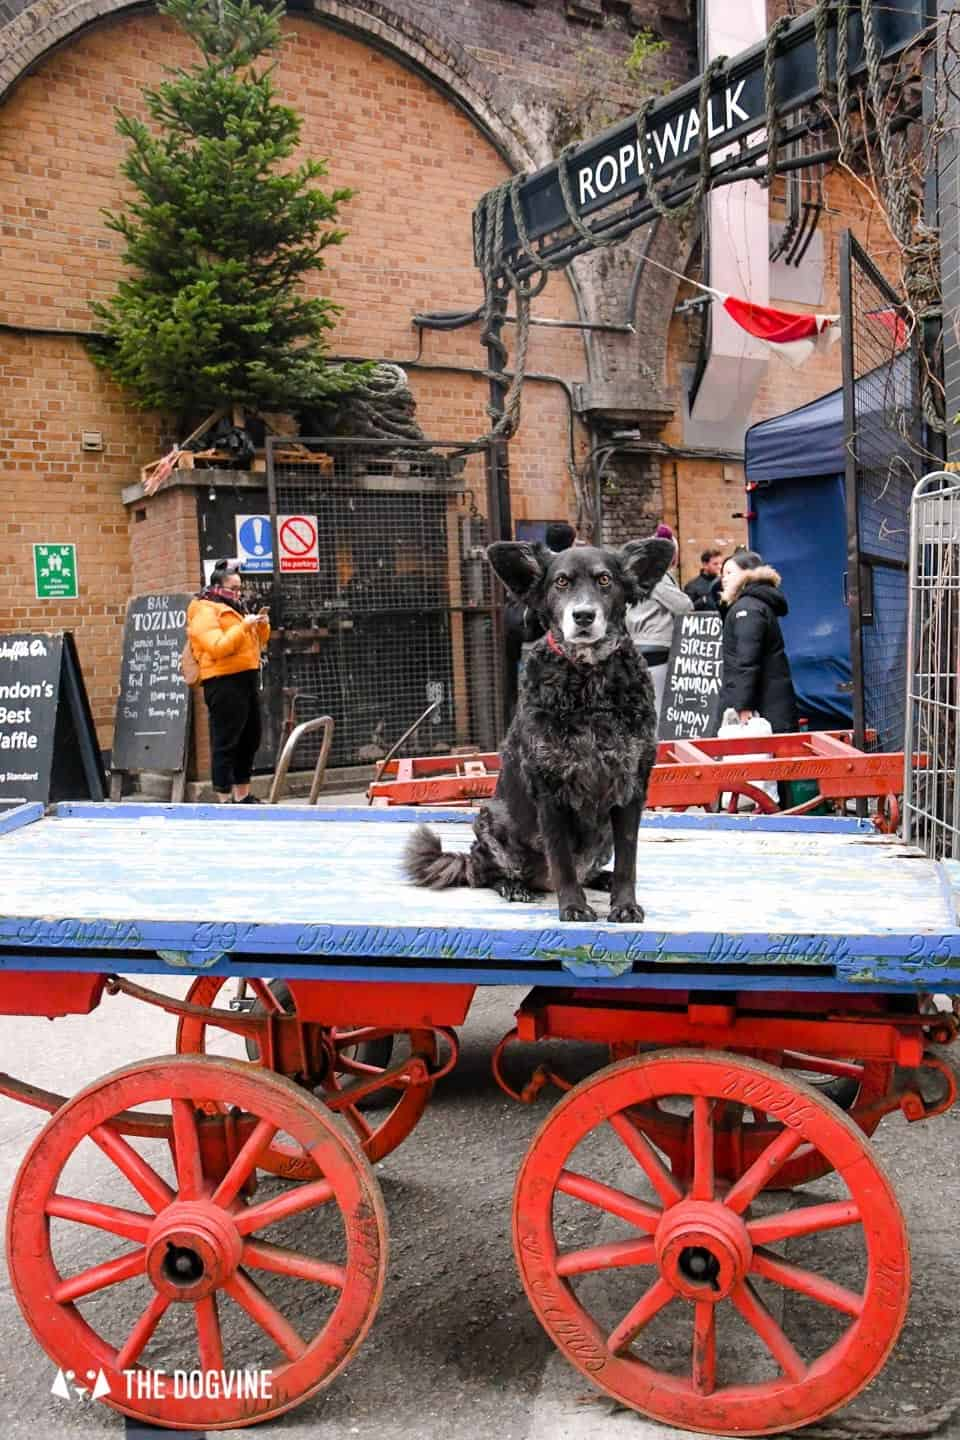 Best Dog-friendly Street Food Markets and Halls in London - Maltby Street Market Ropewalk